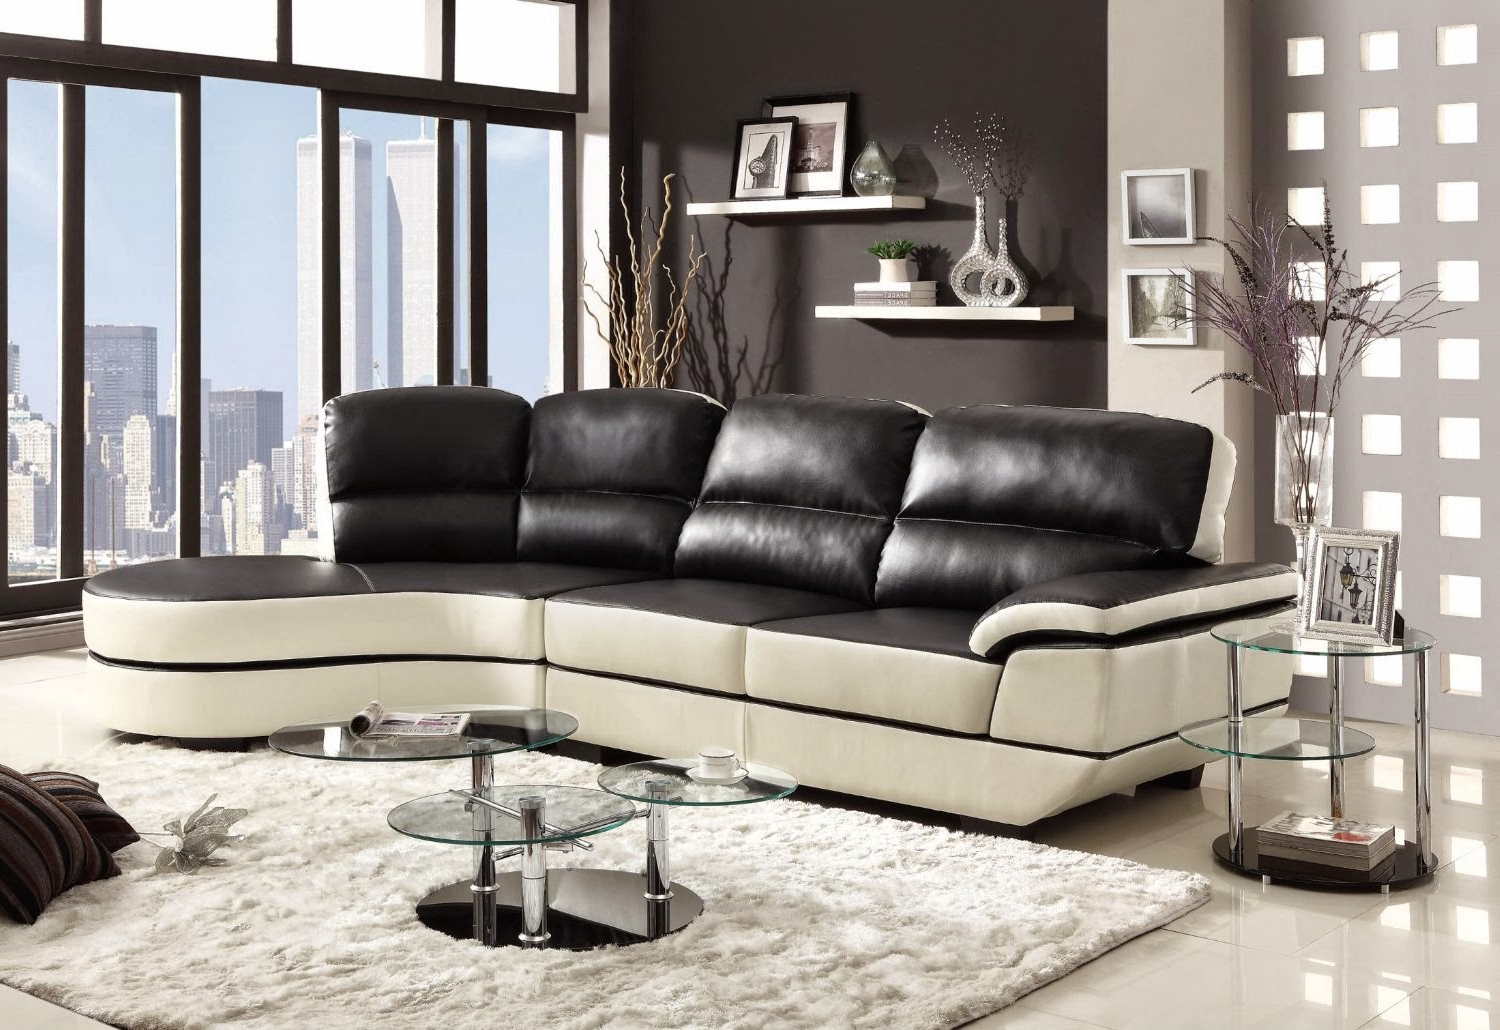 Most Recent 4pc Crowningshield Contemporary Chaise Sectional Sofas With Curved Sofa Website Reviews: Curved Sectional Sofa With Chaise (View 6 of 20)